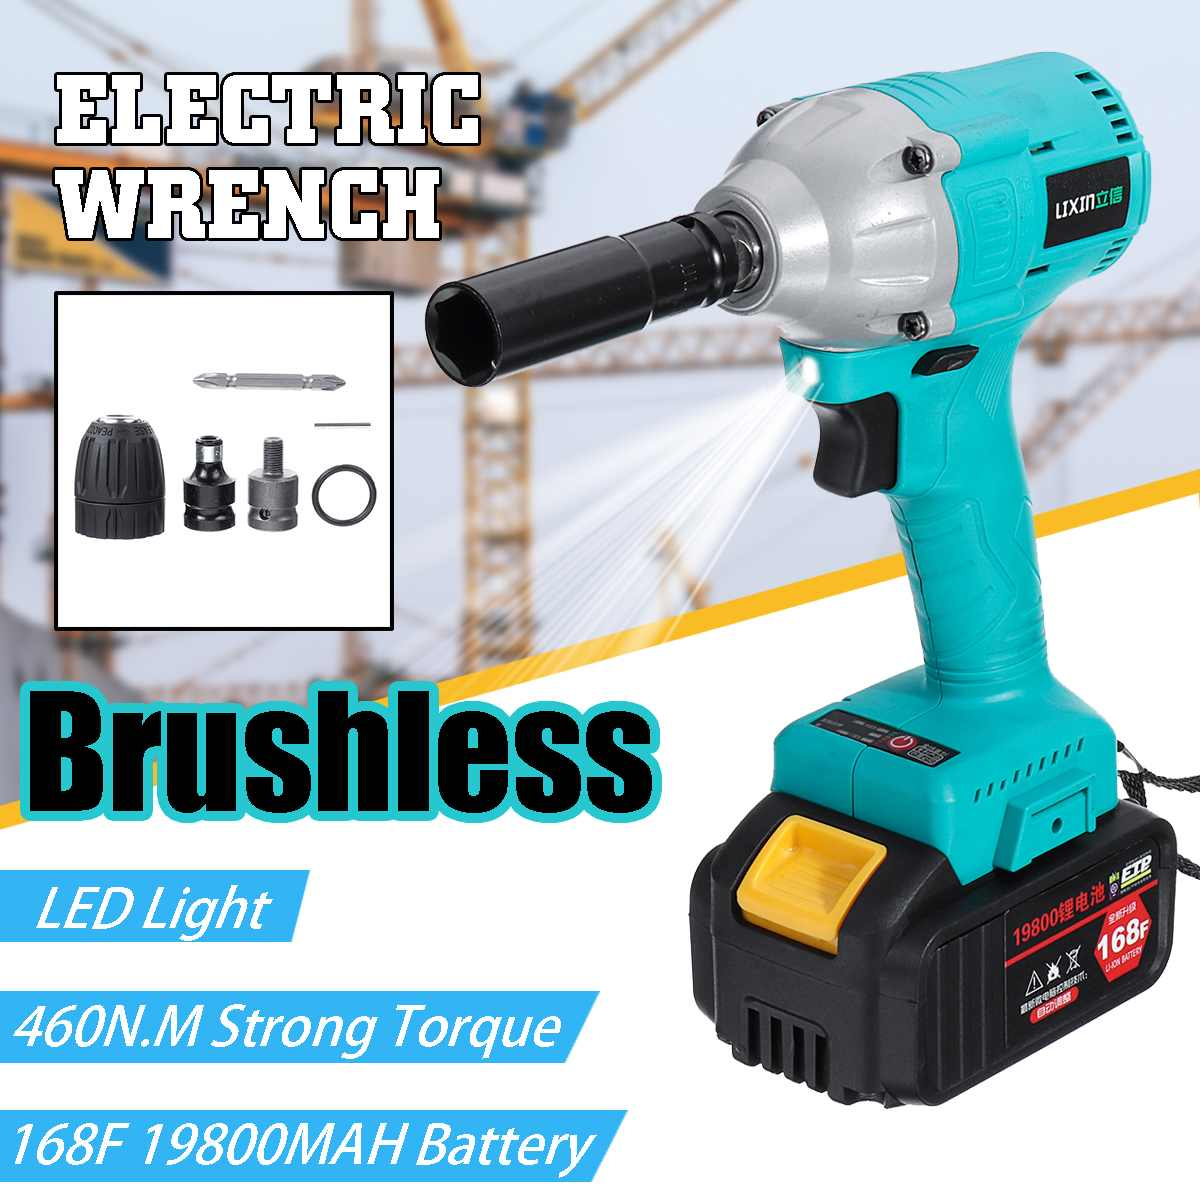 19800mAh 460NM 168V Brushless Electric Wrench Cordless Impact Socket Wrench Battery Rechargeable Drill Install Tools With Box